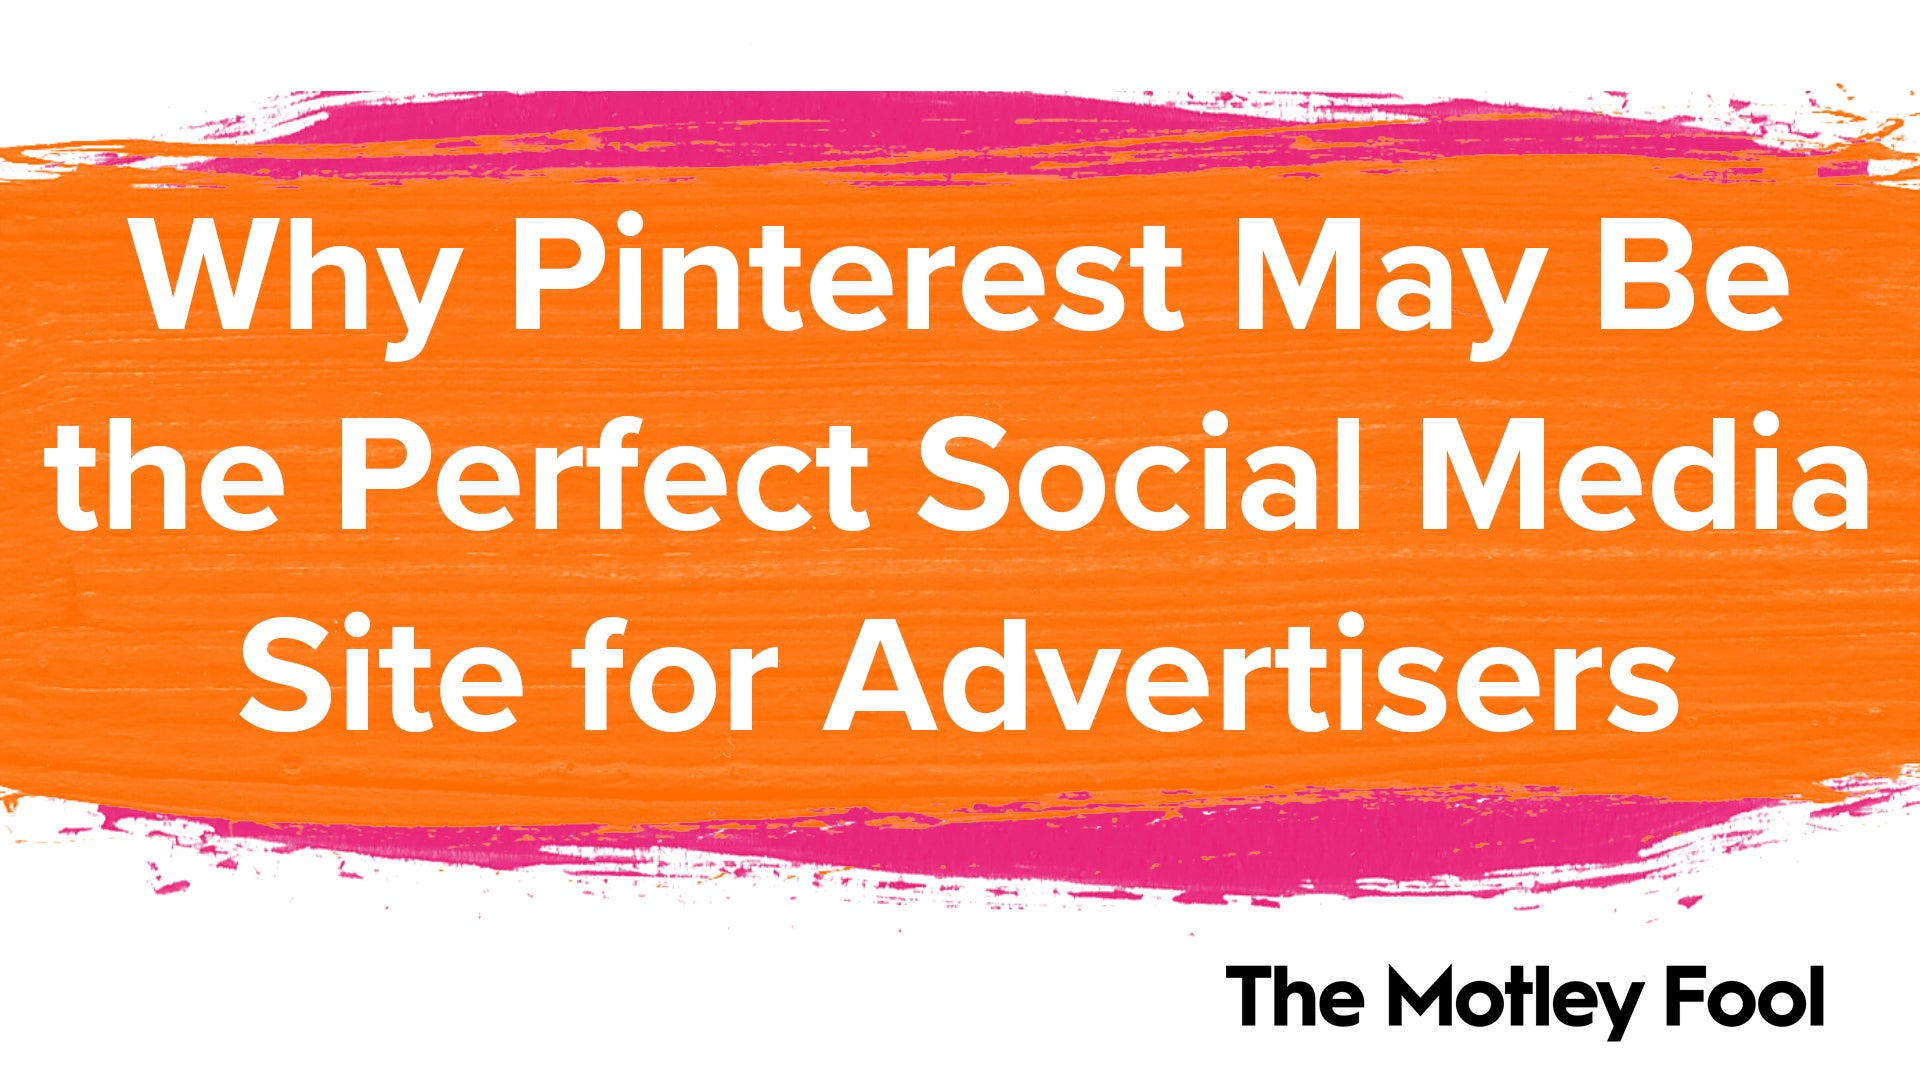 Why Pinterest May Be the Perfect Social Media Site for Advertisers